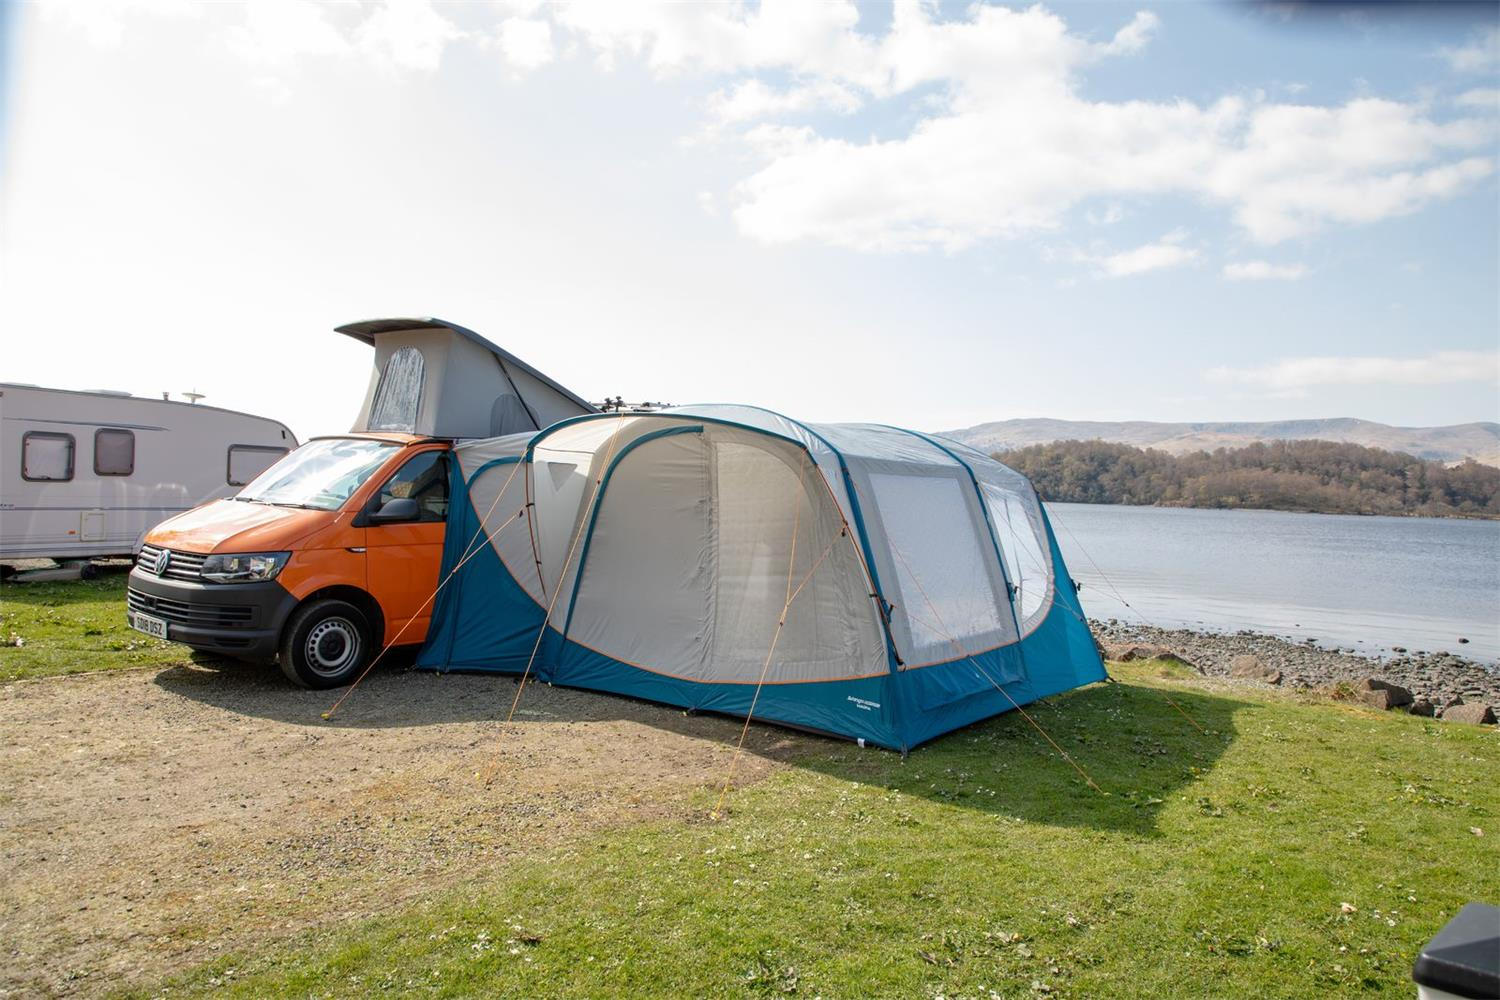 Relax and watch the hours go by in the Vango Magra VW driveaway awning.